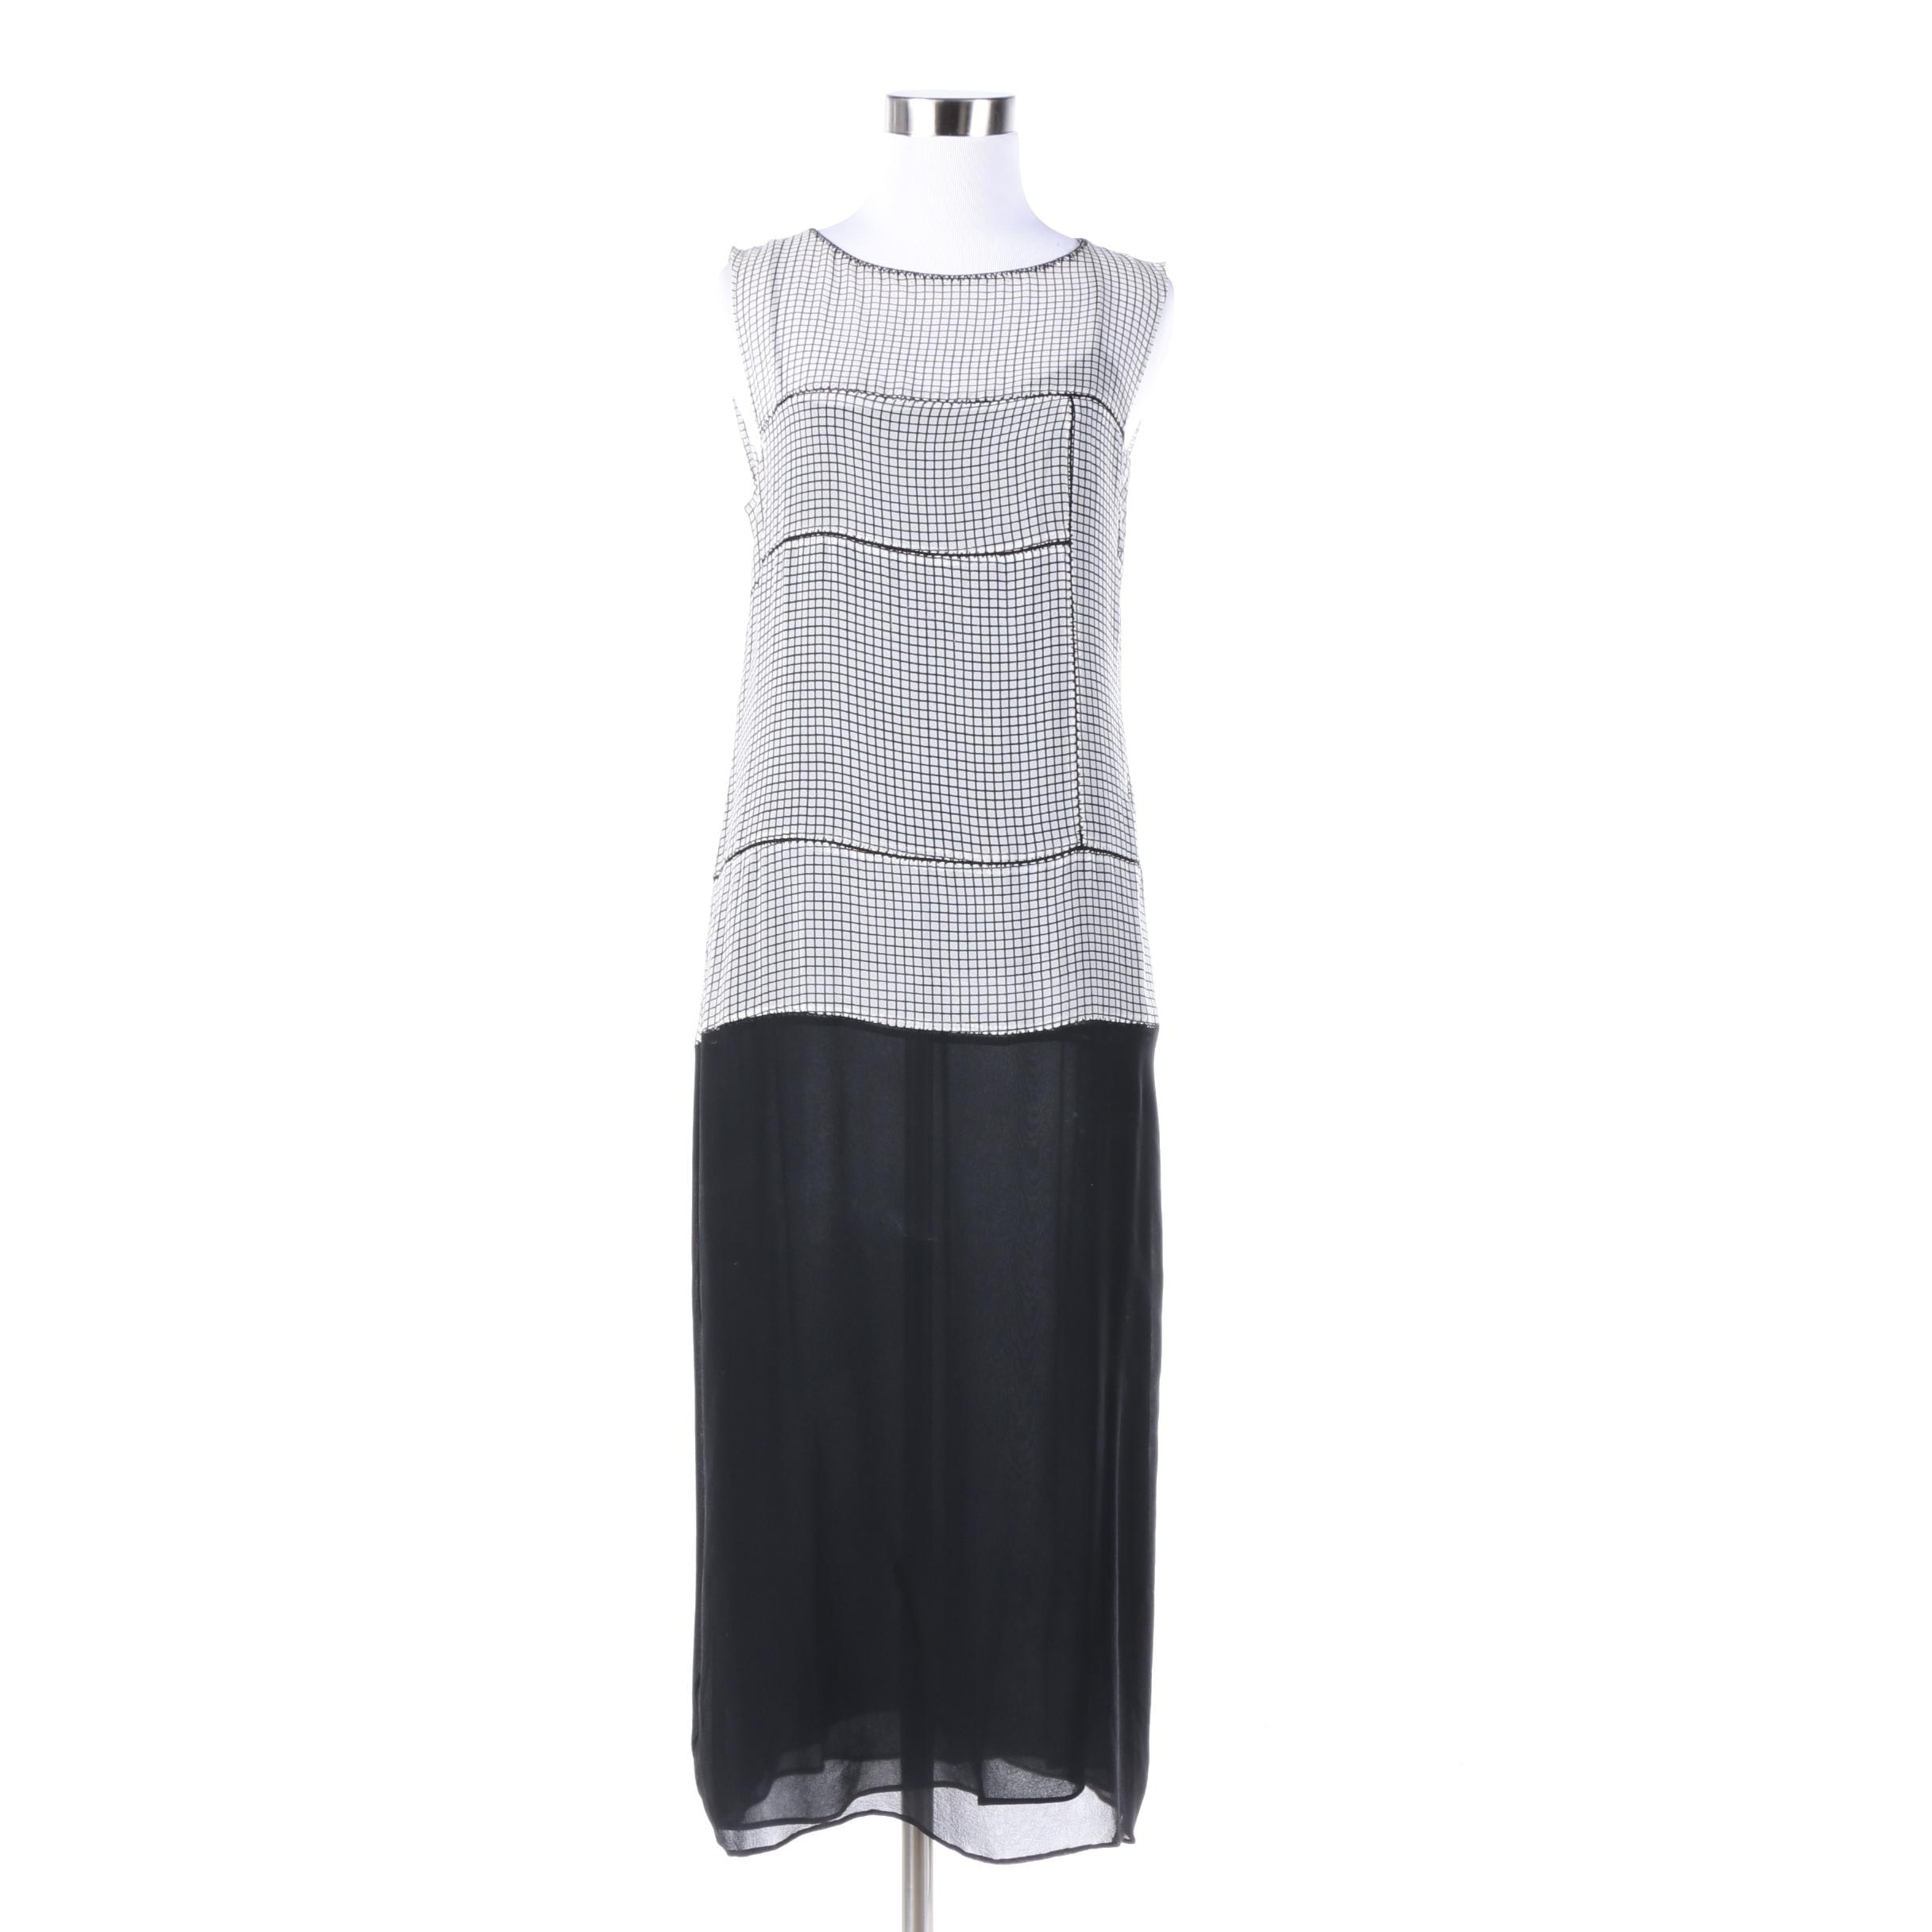 Alberta Ferretti Black and White Dress with Black Silk Slip